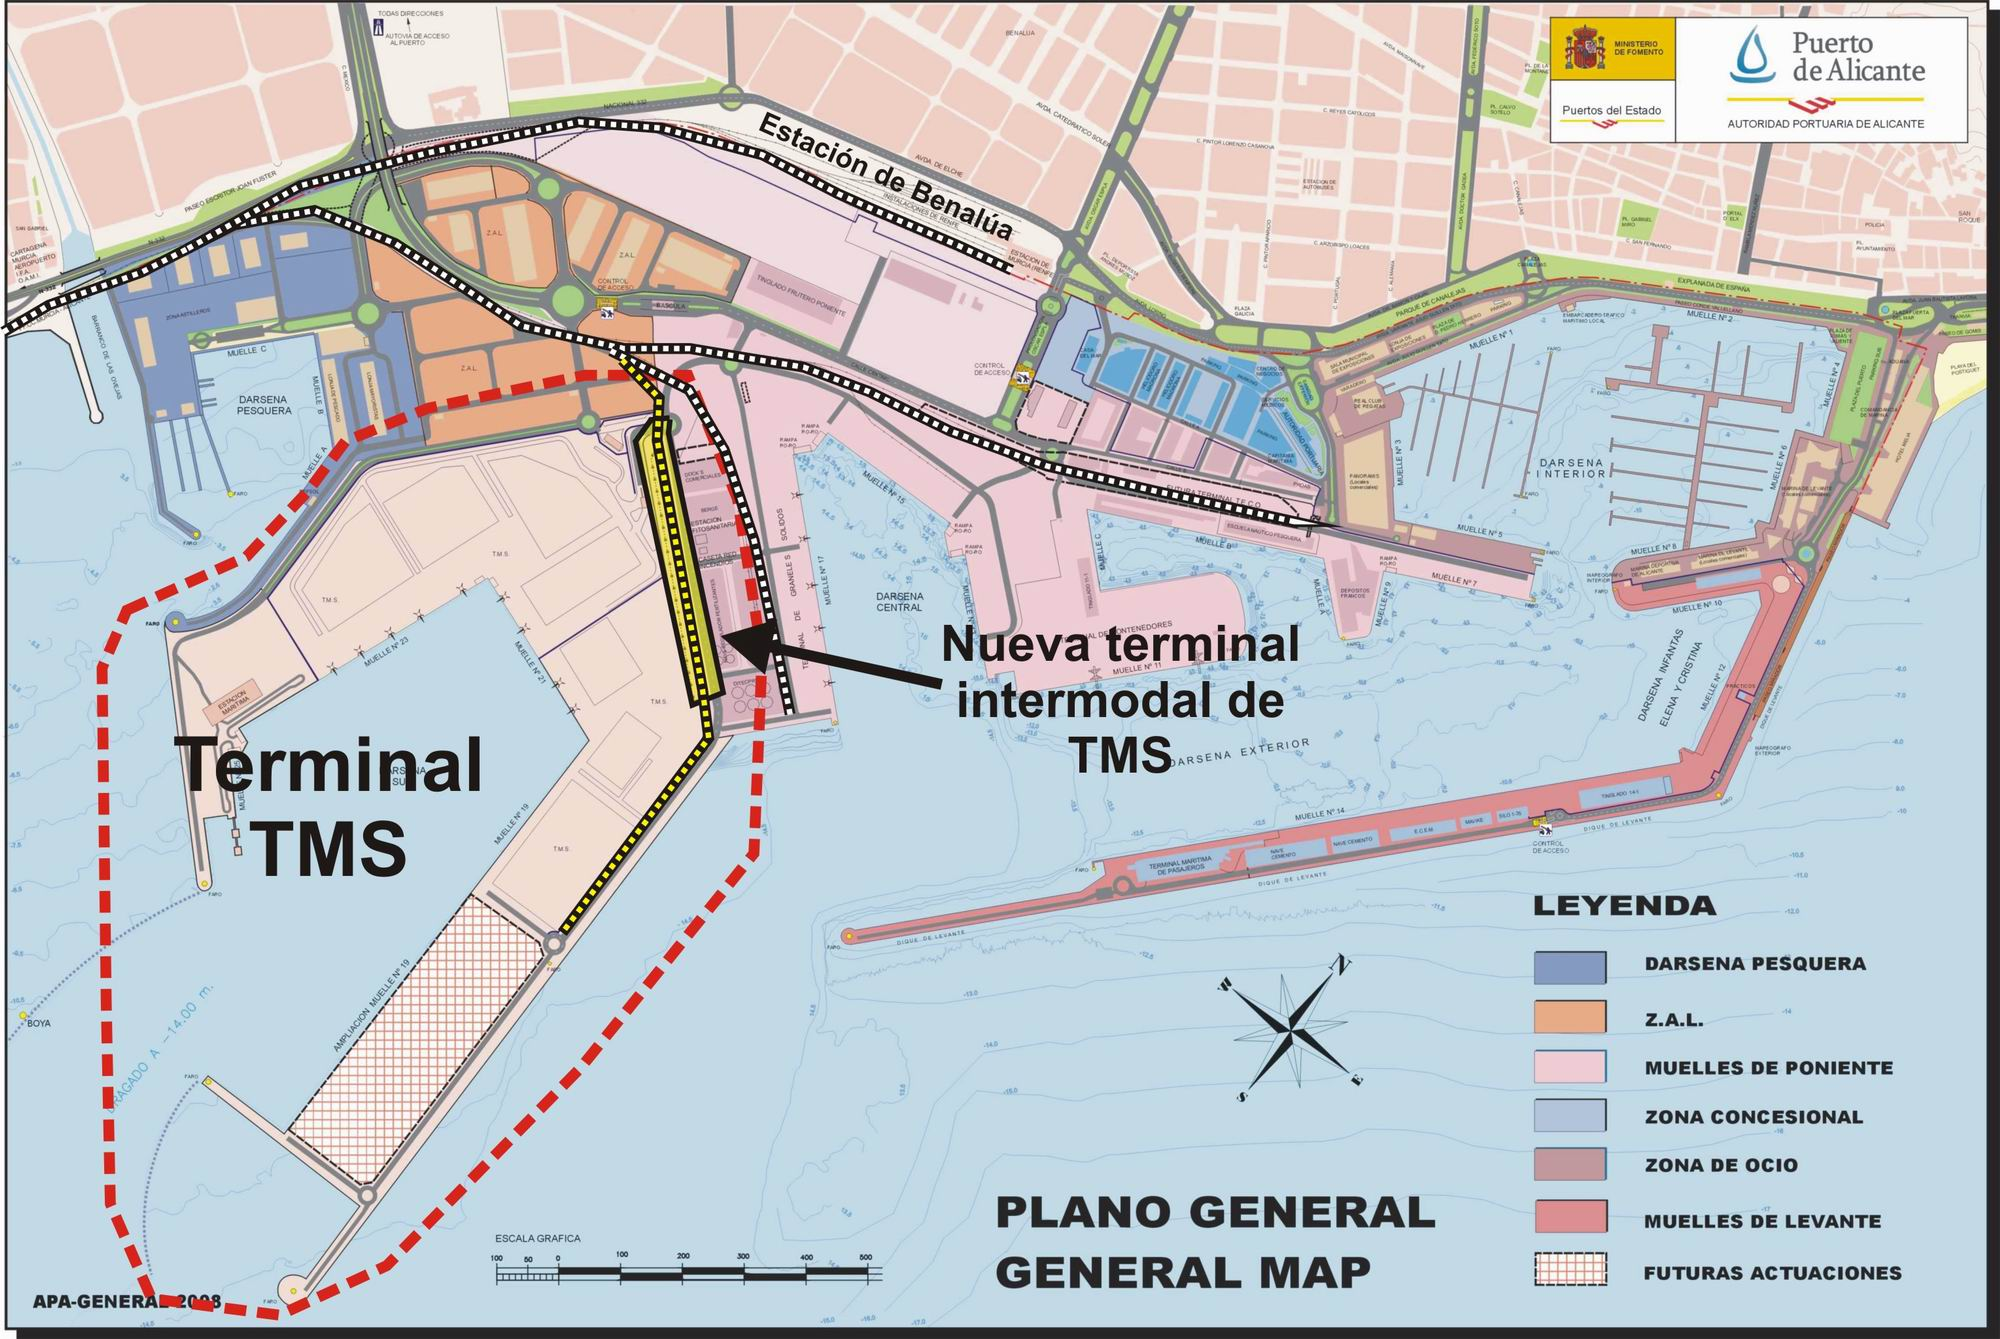 Intermodal terminal of the port of Alicante 2008